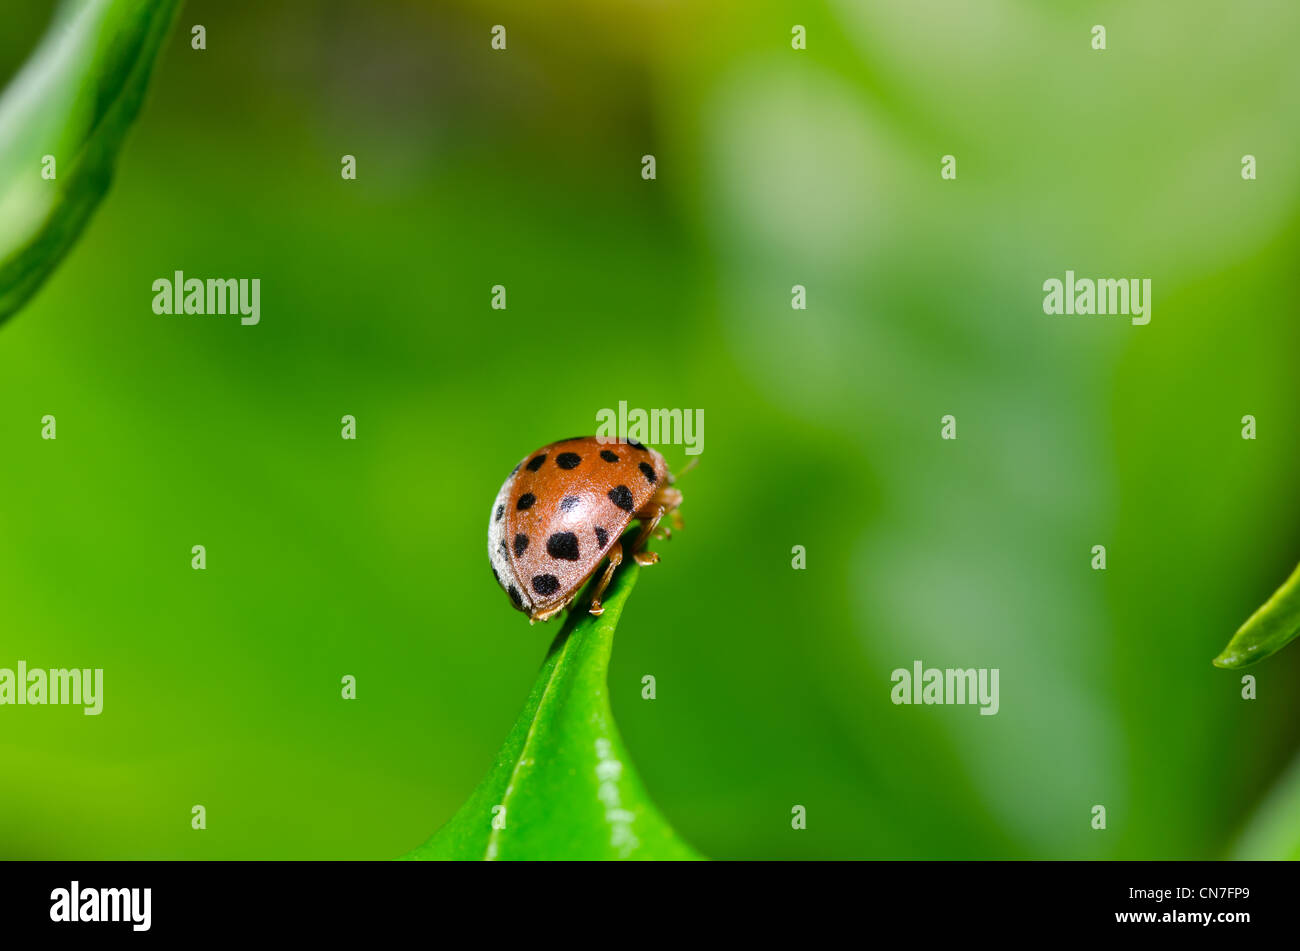 ladybug in the garden or in the green nature Stock Photo